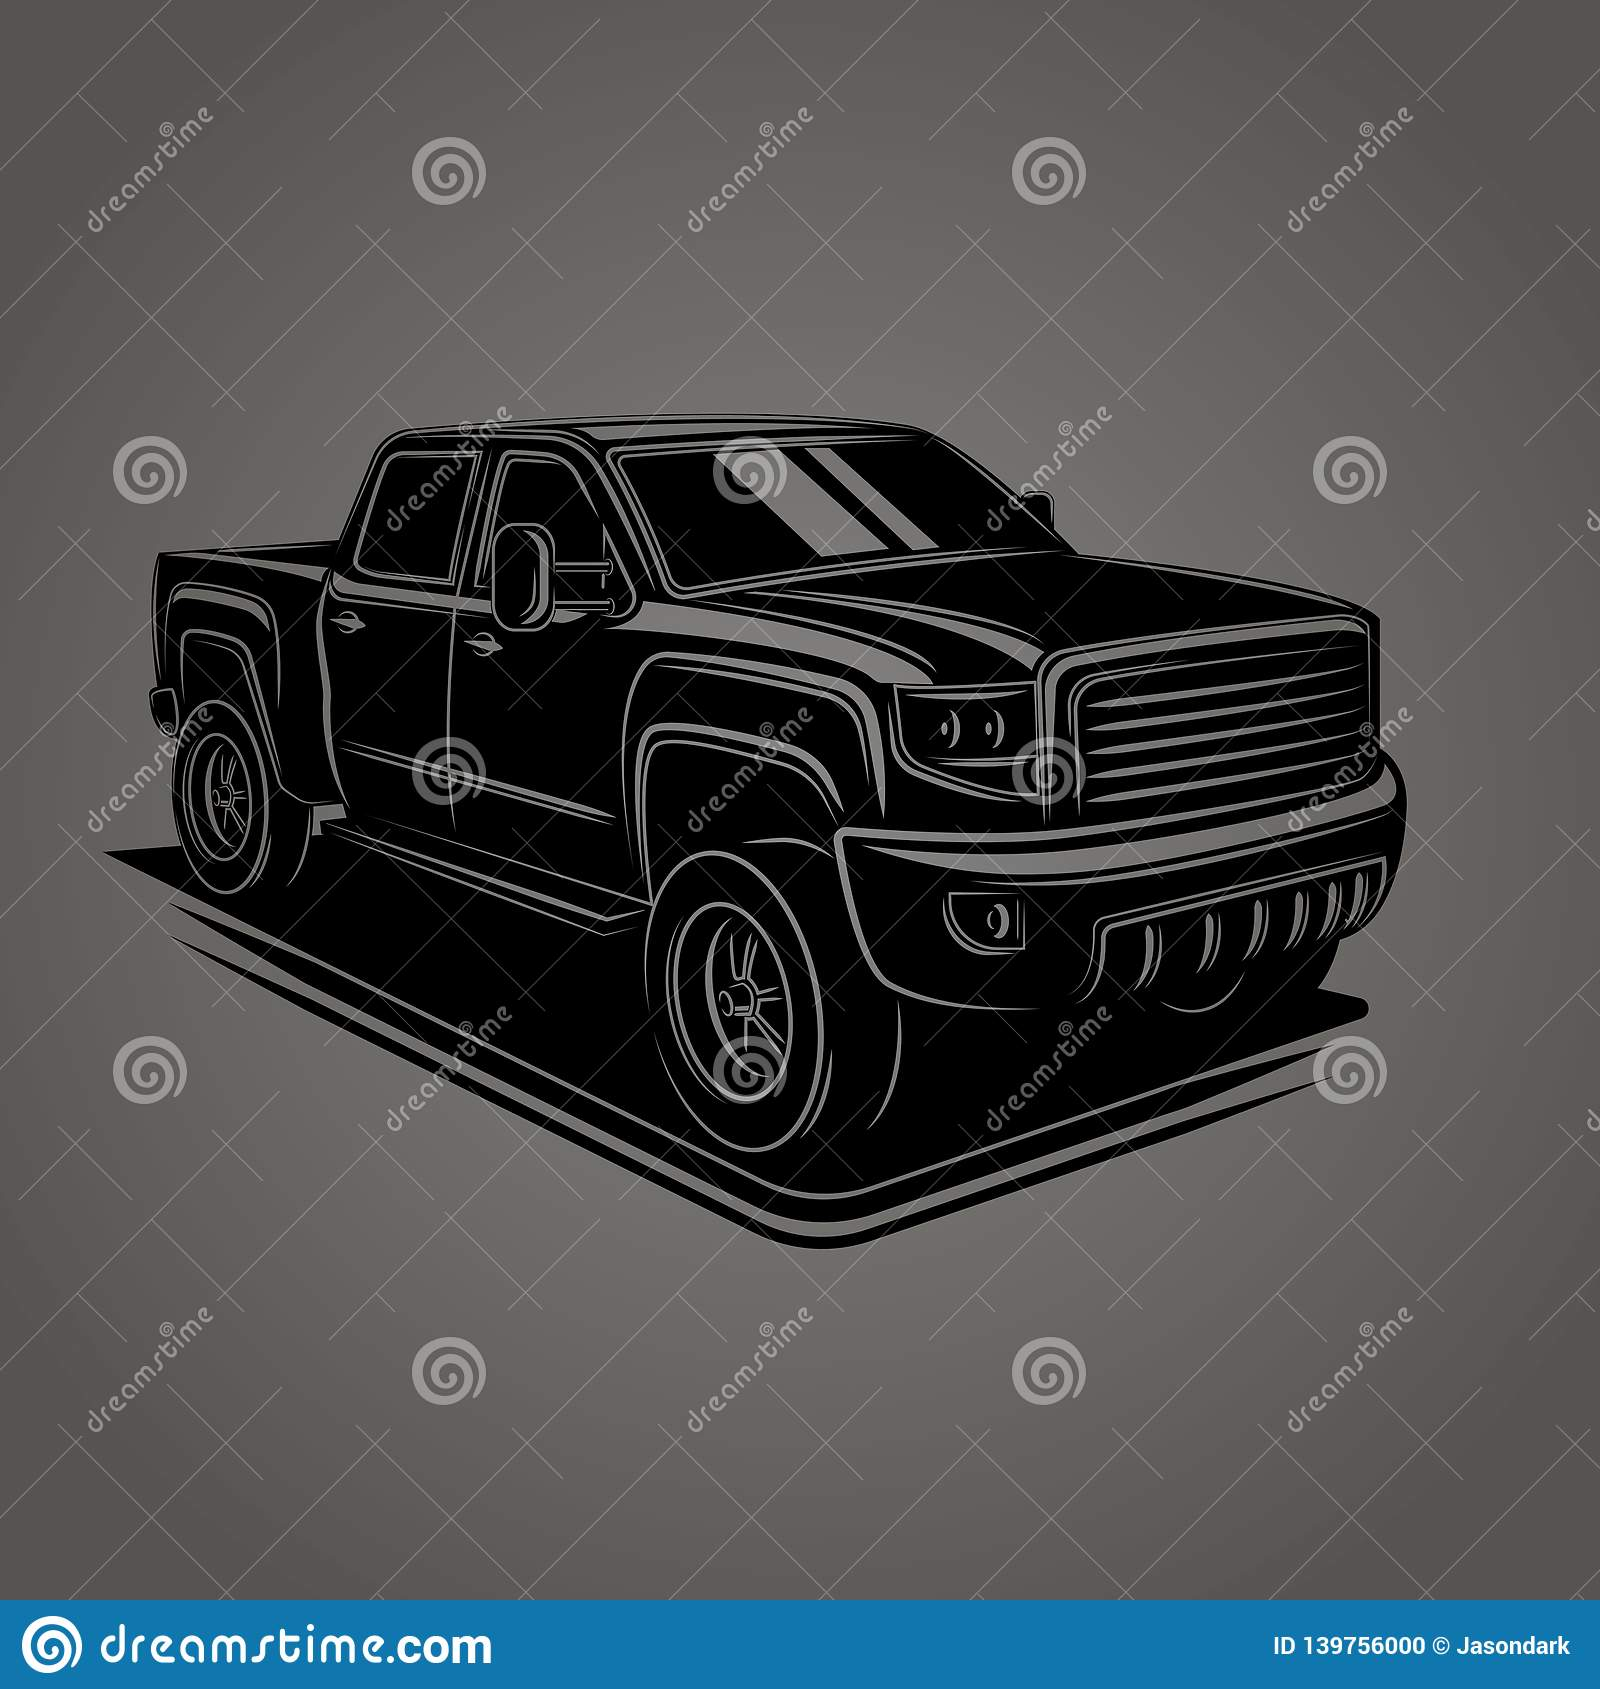 Modern Pickup Truck Vector Illustration. SUV 4x4 Offroad